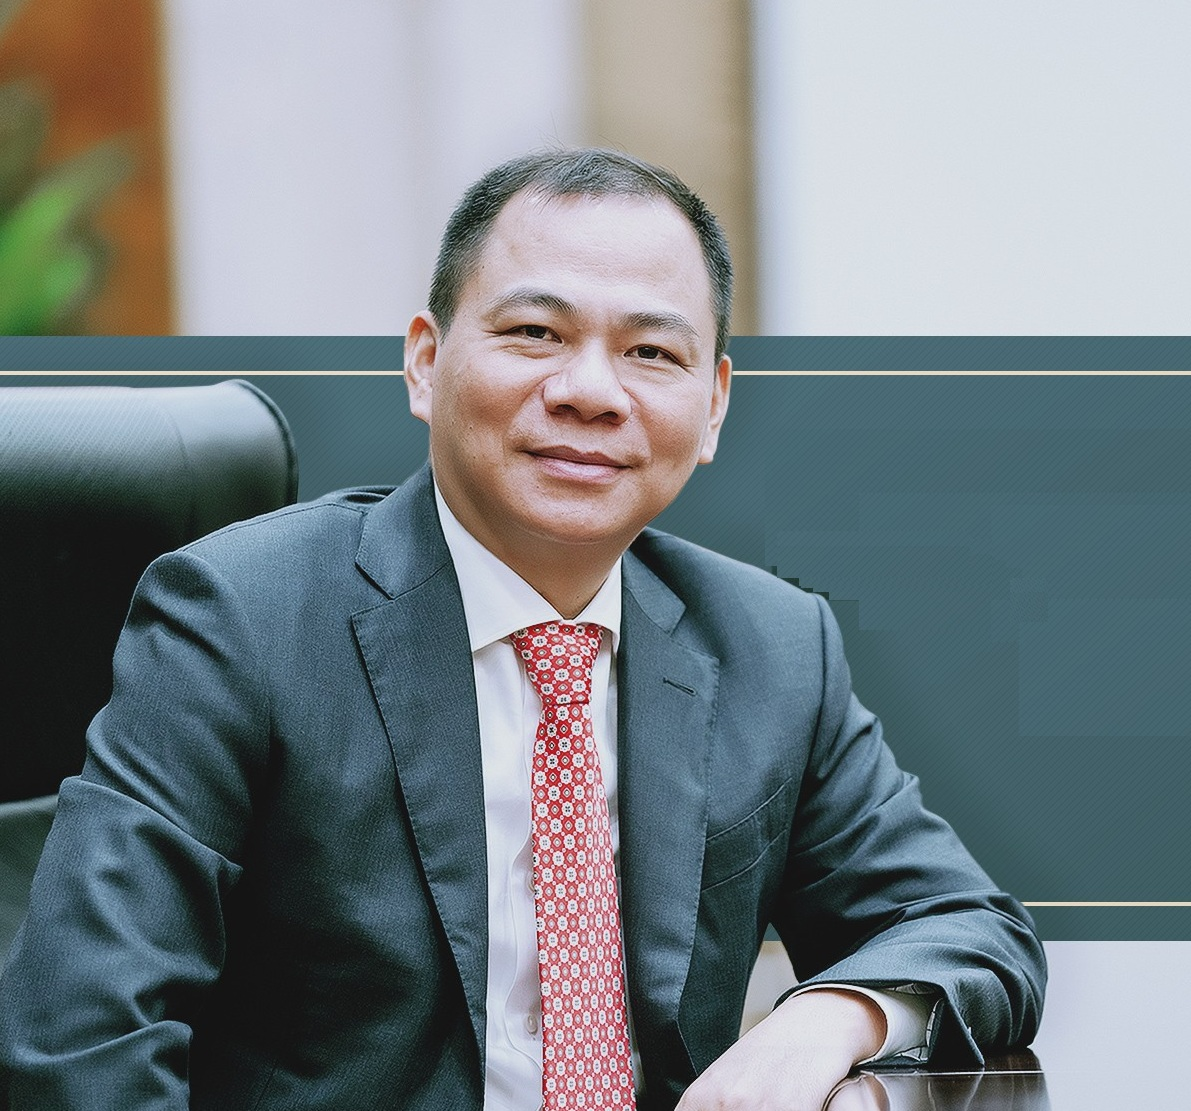 Conversation with Vietnamese billionaire Pham Nhat Vuong - Part 3